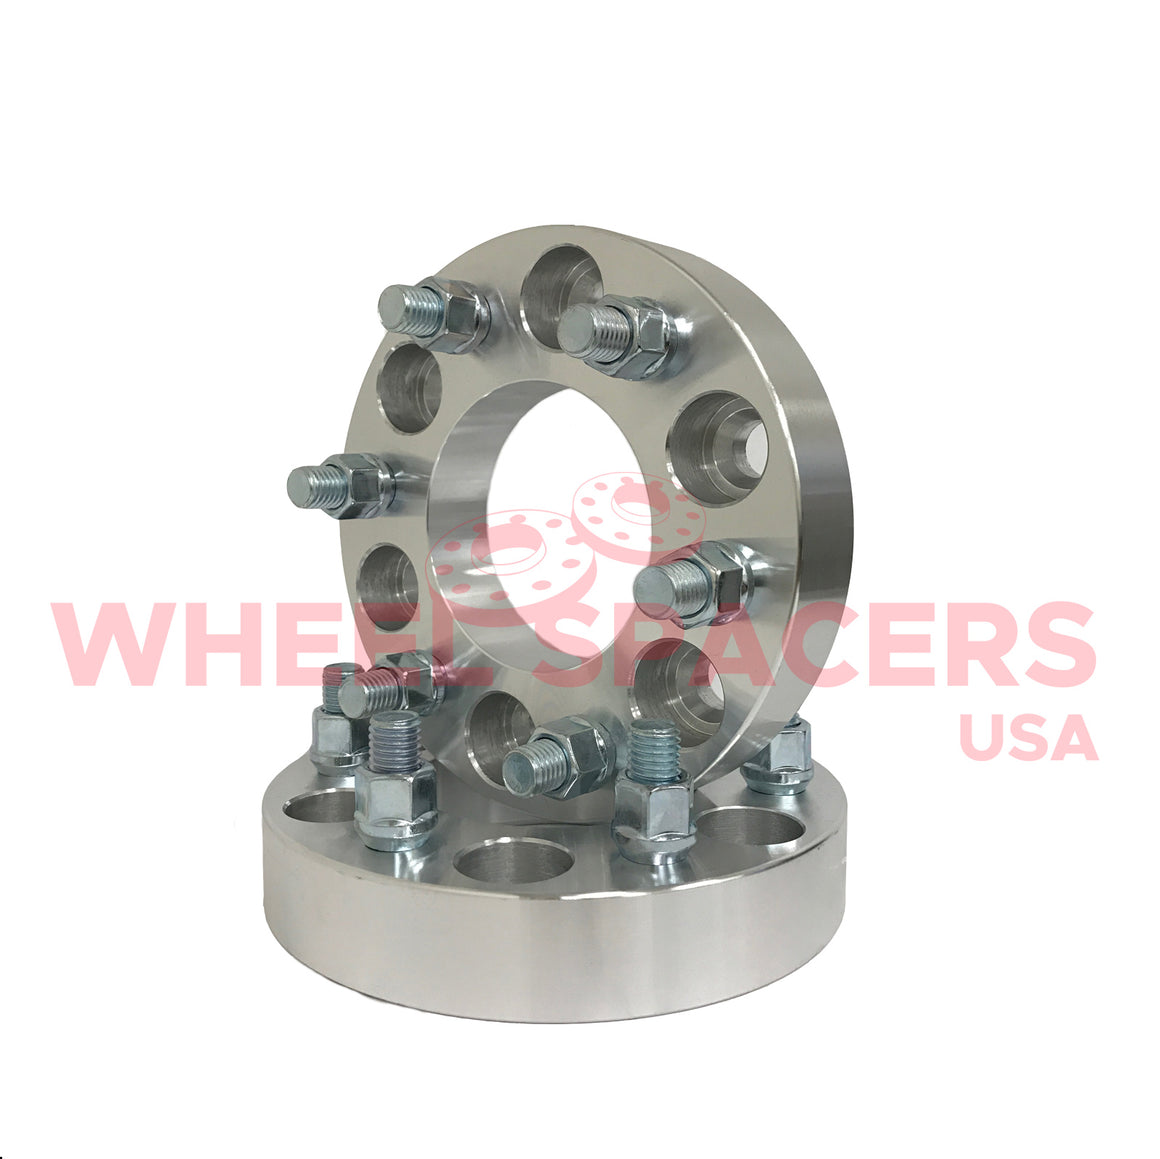 4) 6x135 Hub Centric Wheel Spacers For 2004-2014 F-150 6 Lug Trucks 14x2 Threads 87.1mm Hub and Wheel Centric Bore